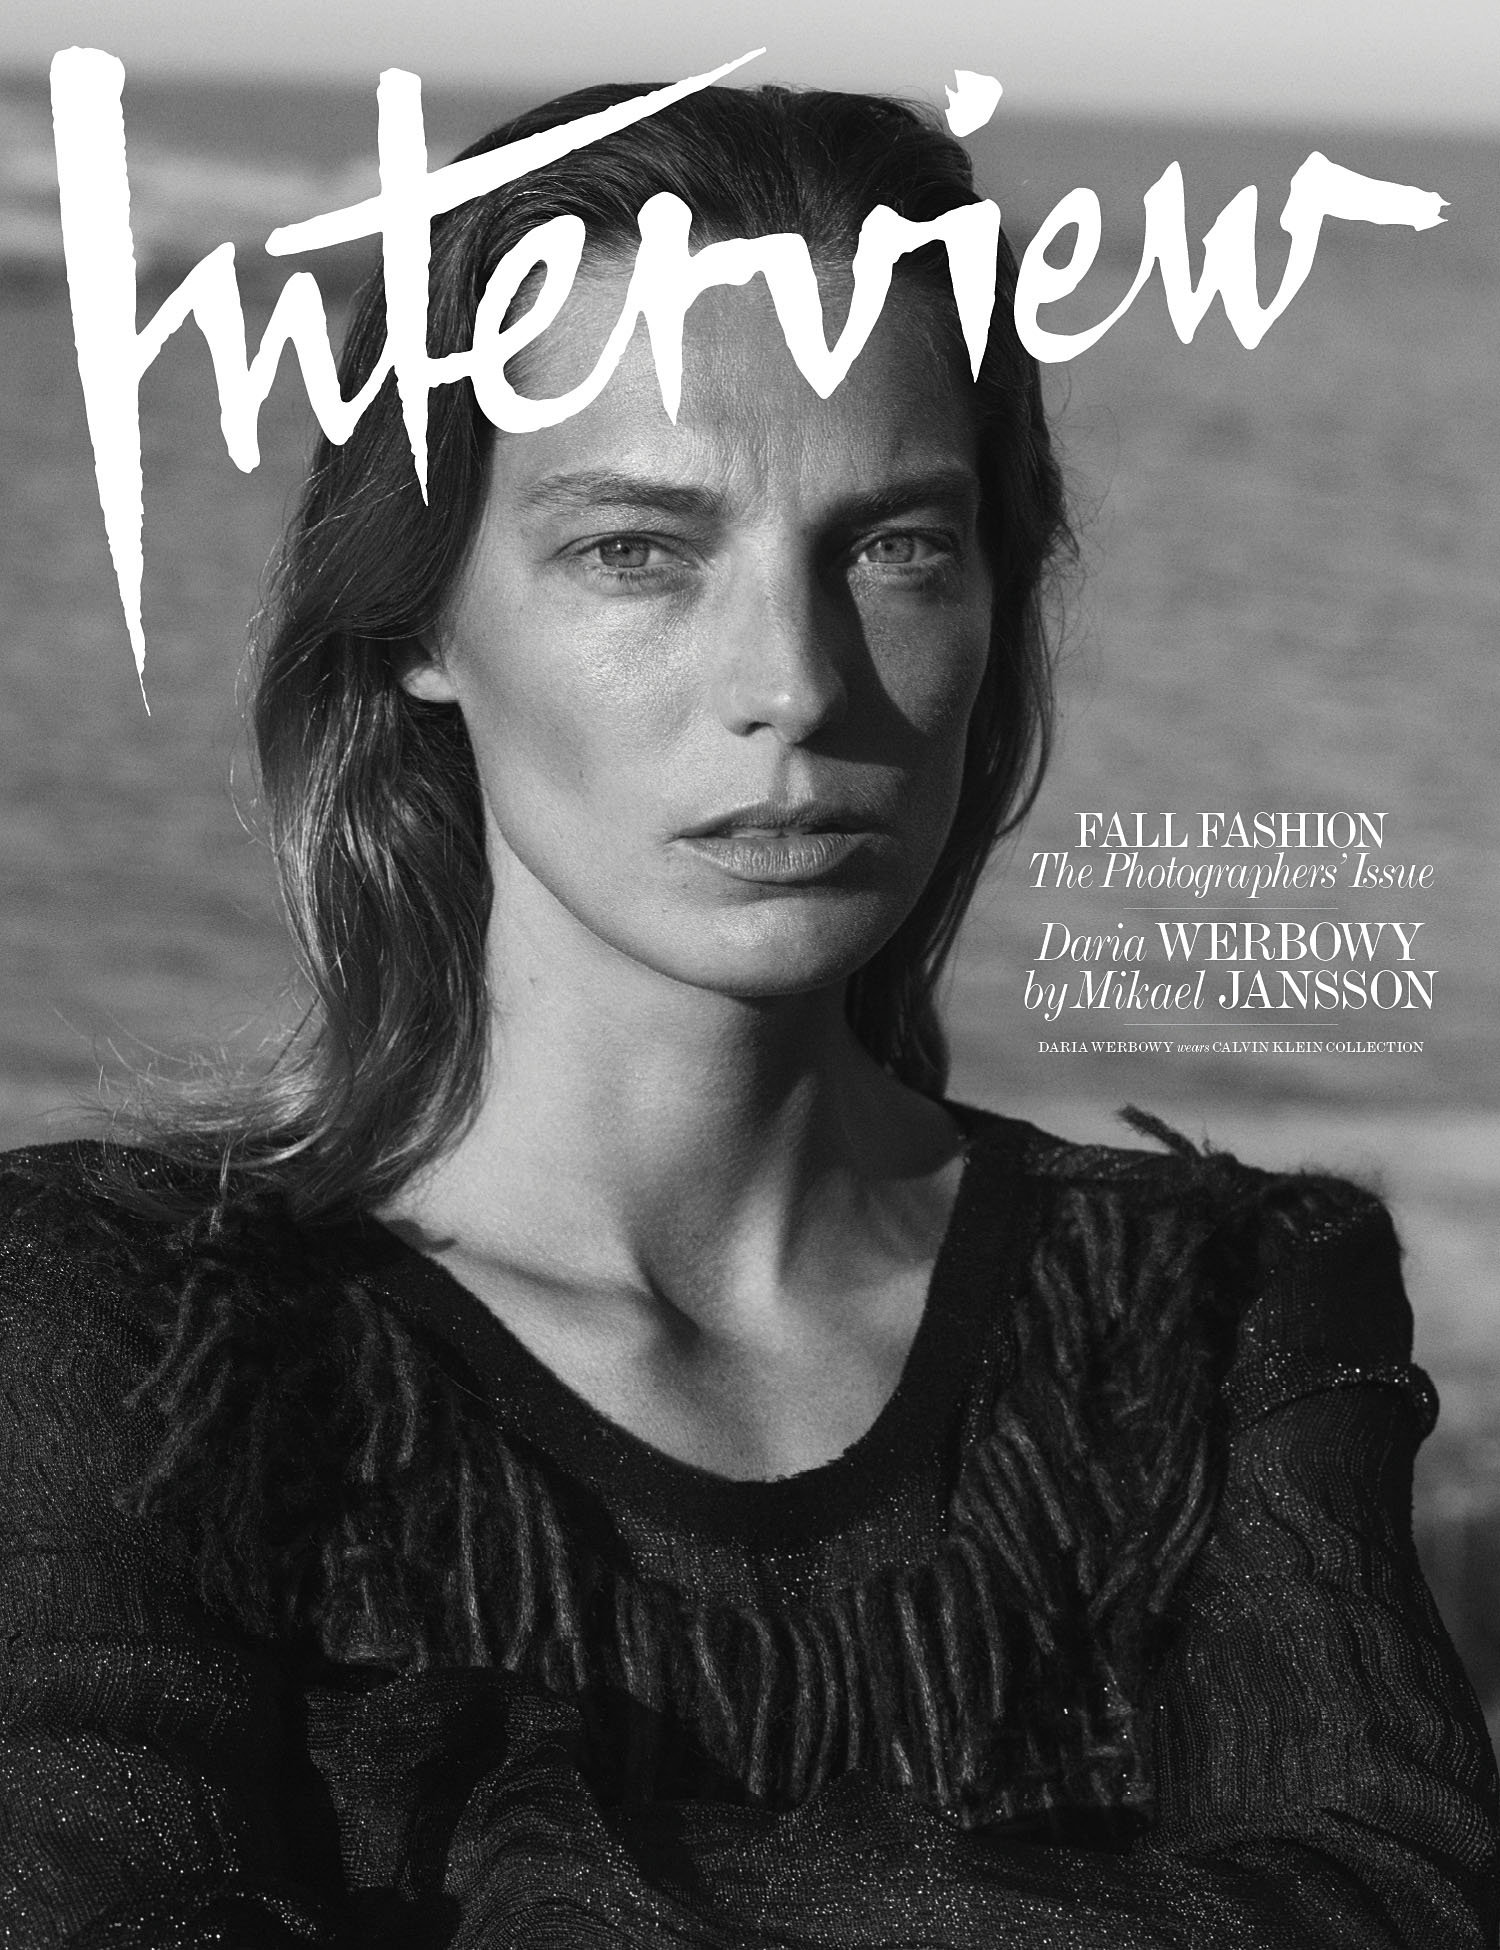 daria-werbowy-by-mikael-jansson-for-interview-magazine-september-2014